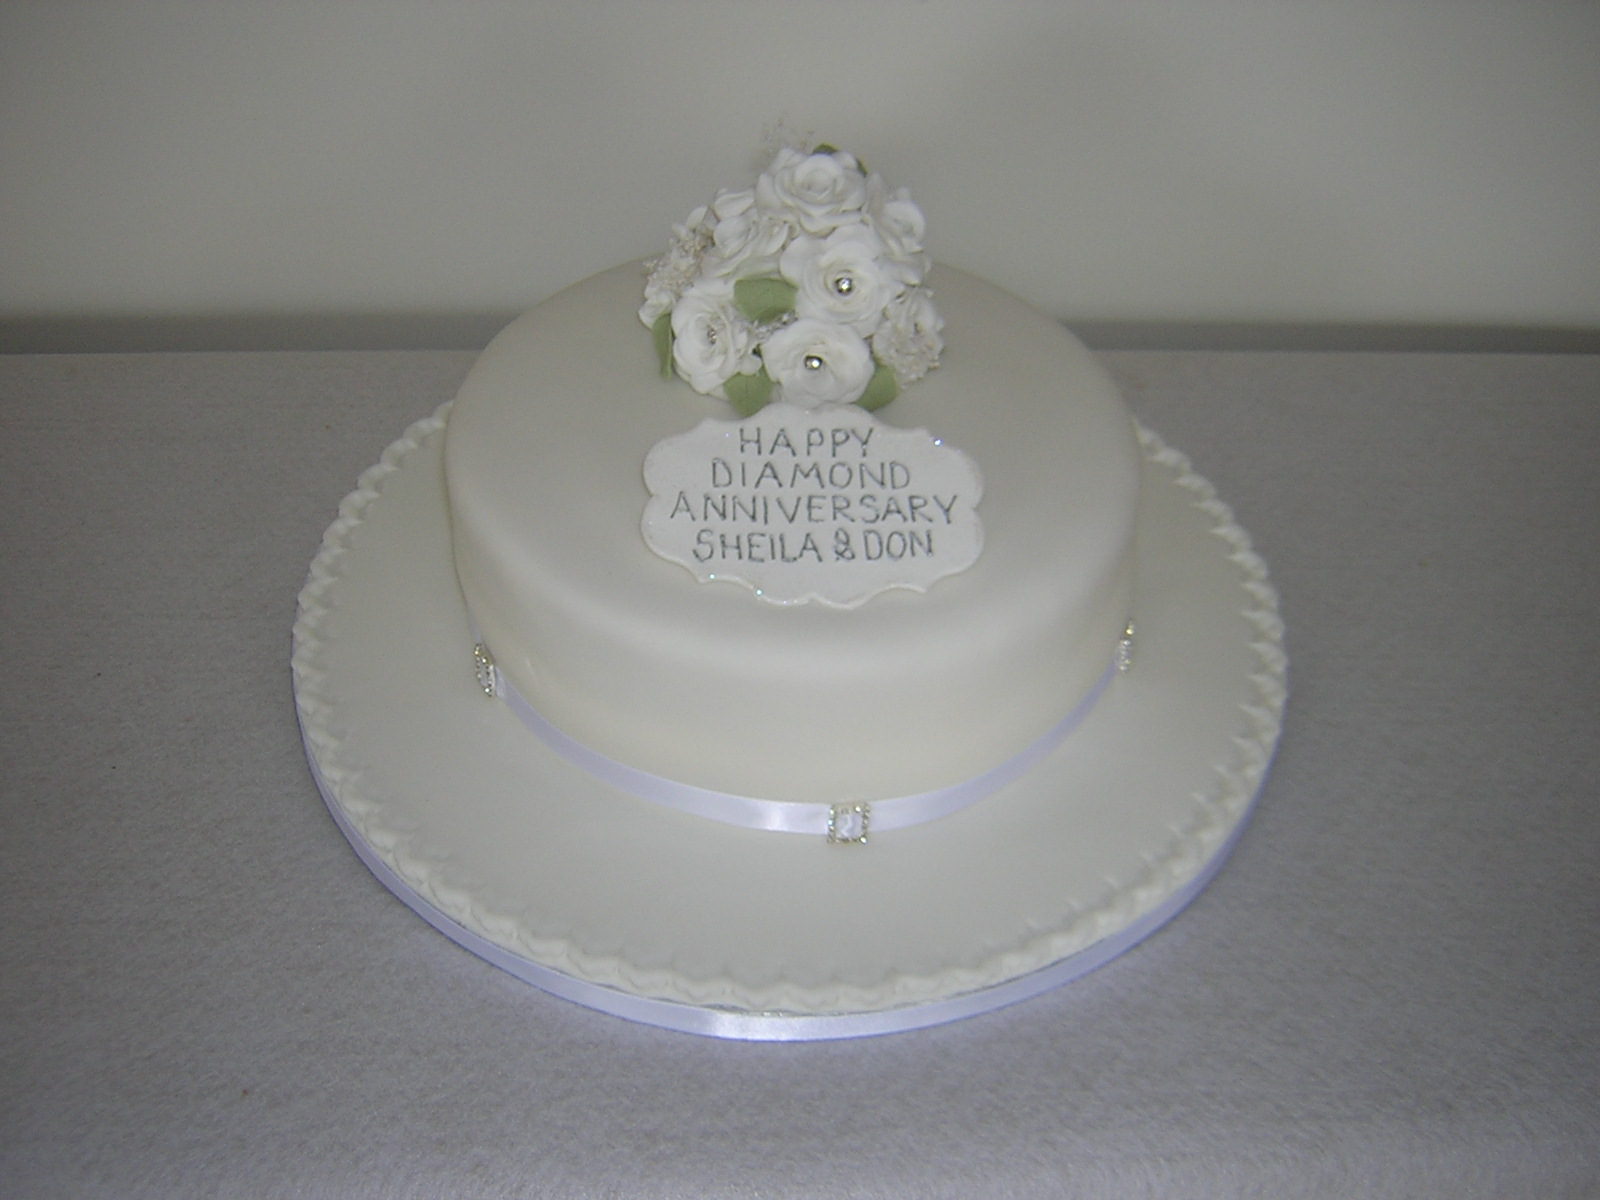 Diamond Anniversary Cake Images : Celebrations, Thanks, & More - Julie s Creative CakesJulie ...